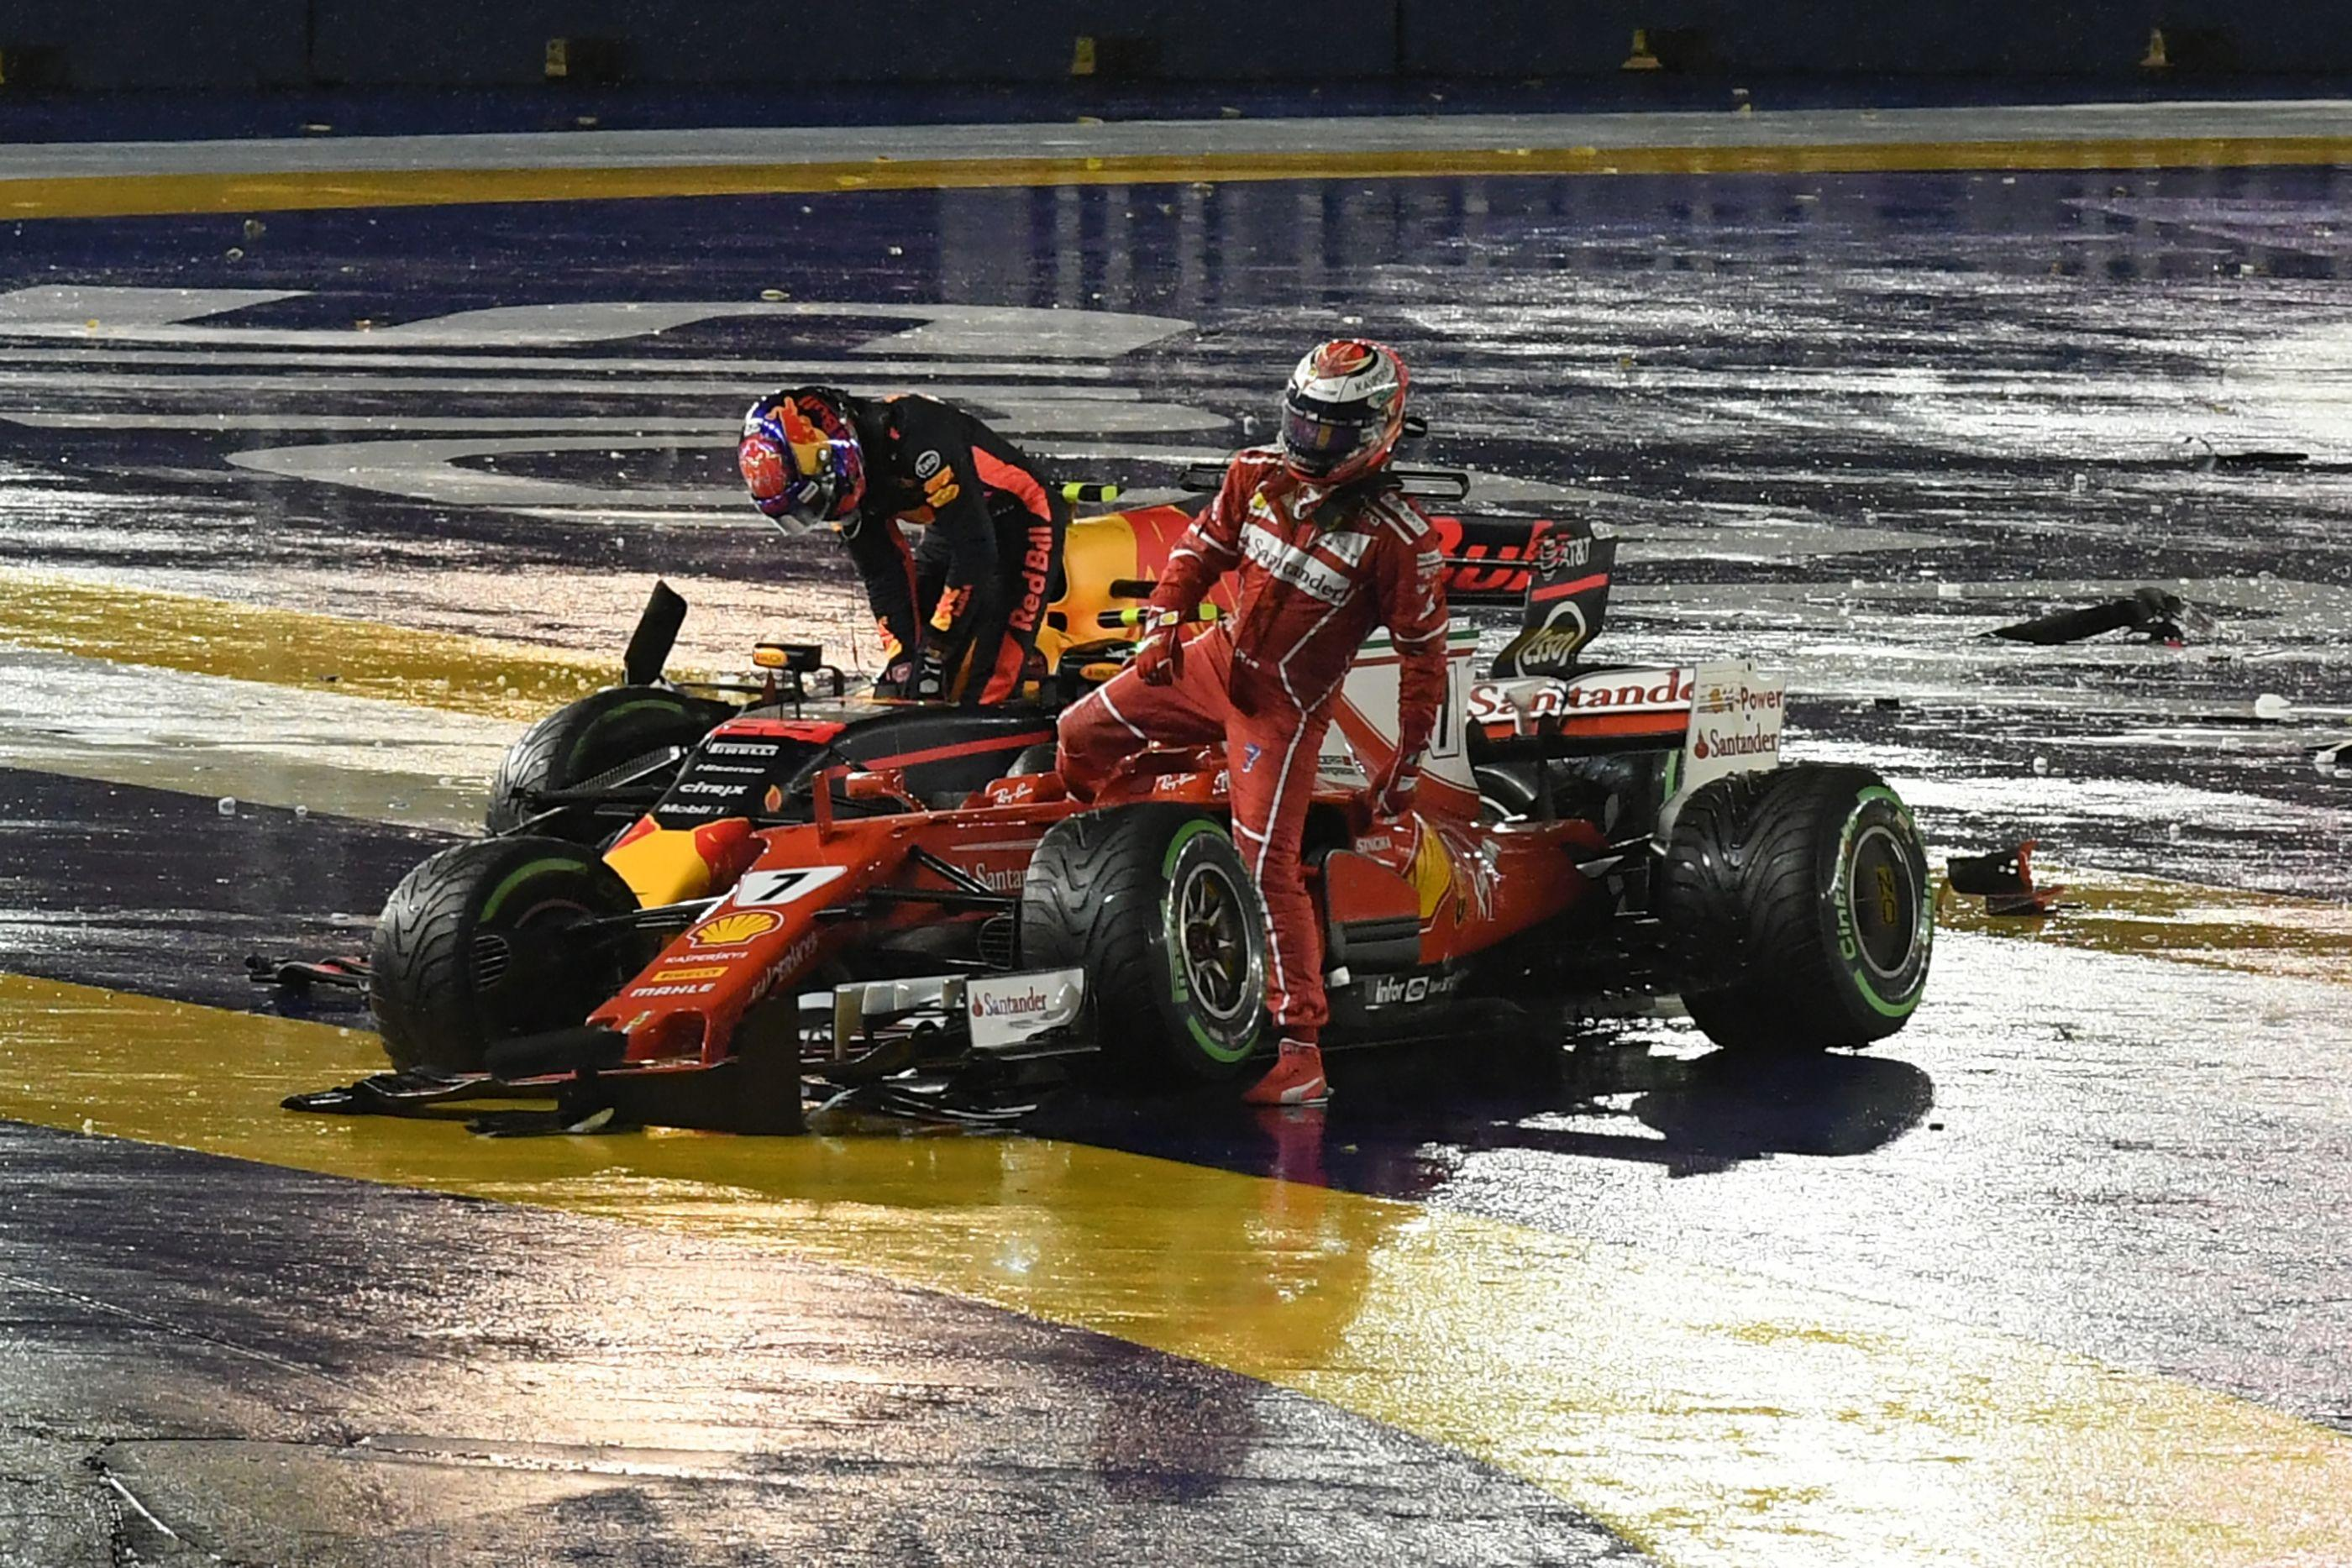 Singapore is notorious for collisions as a tight street circuit